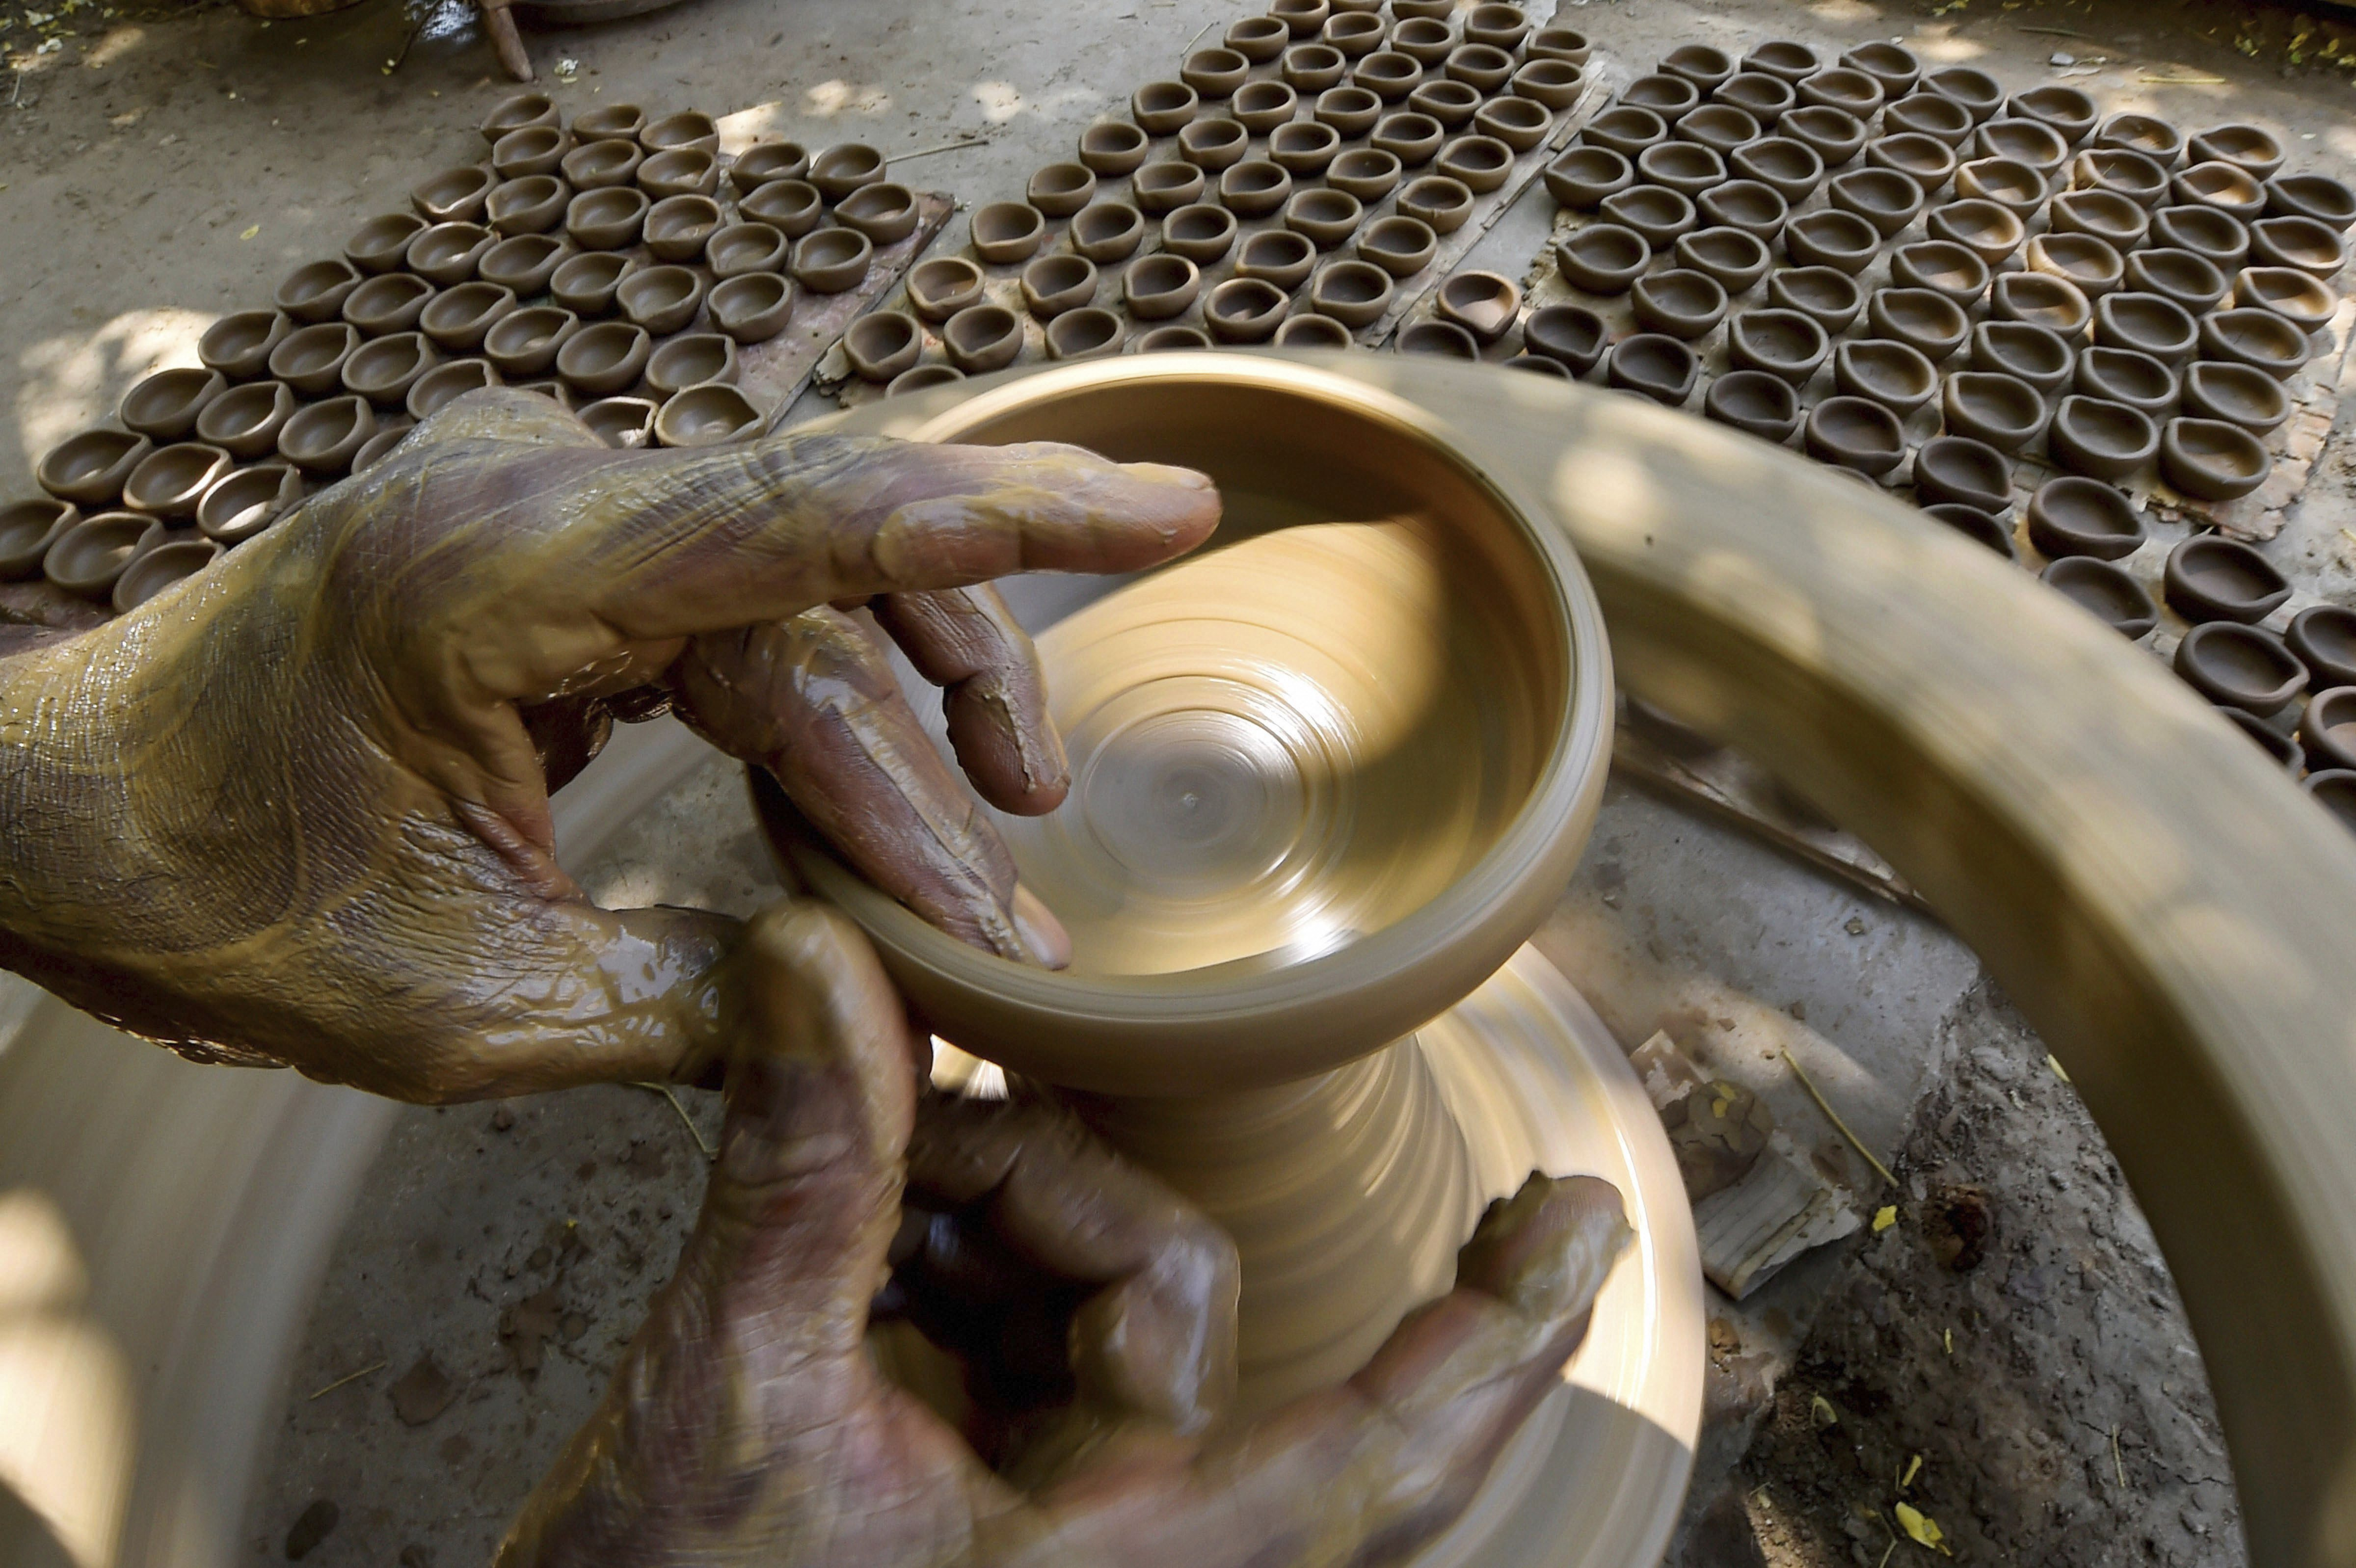 A caly sculpting artisan prepares earthern lamps ahead of Diwali festival celebrations, in Chennai - PTI